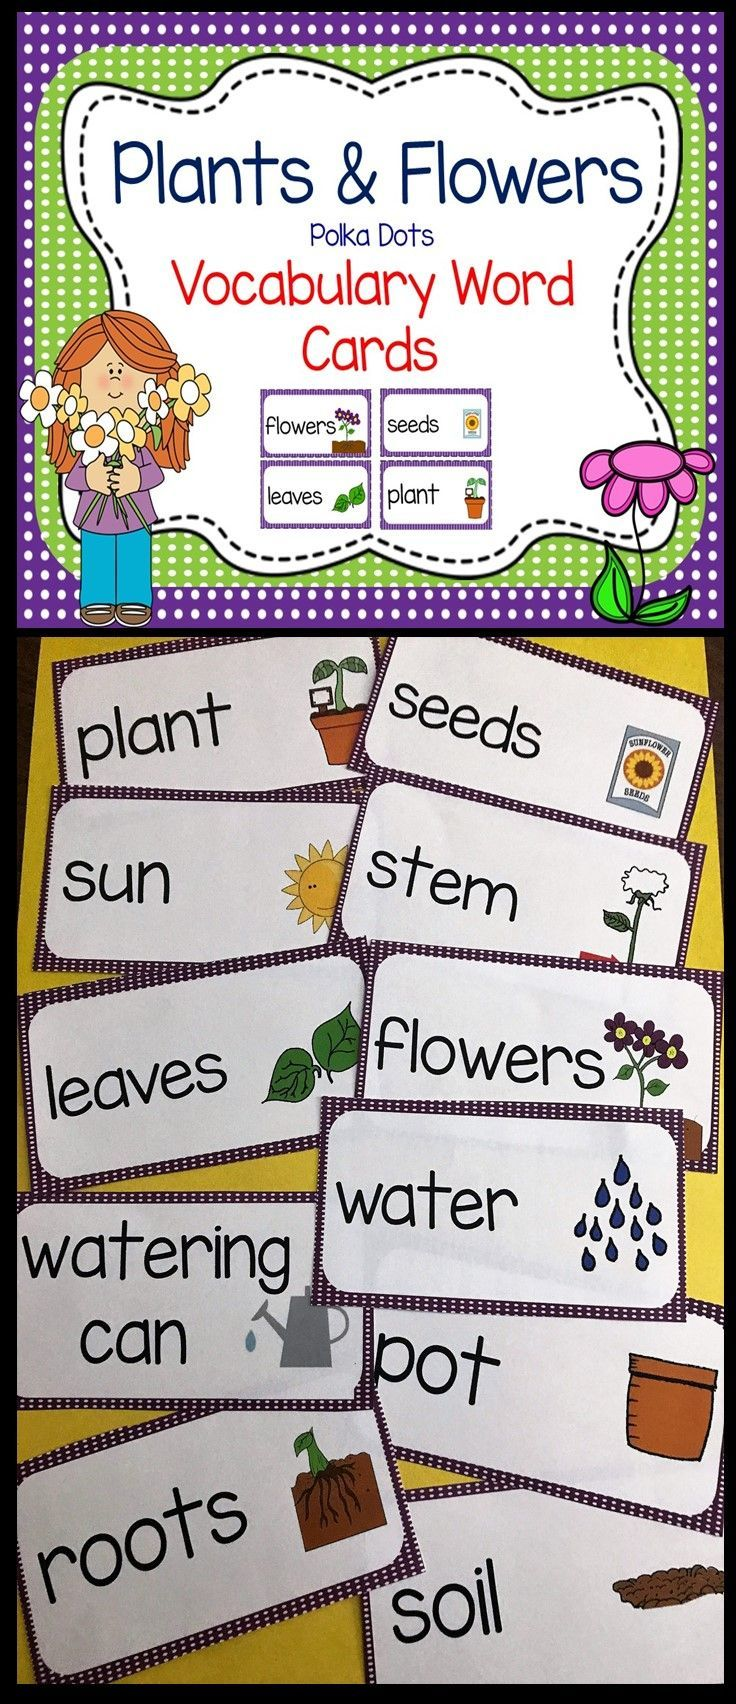 Plants And Flowers Polka Dots Vocabulary Word And Picture Cards Word Wall Science Focus Wall Pocket Vocabulary Cards Plant Vocabulary Cards Vocabulary [ 1704 x 736 Pixel ]